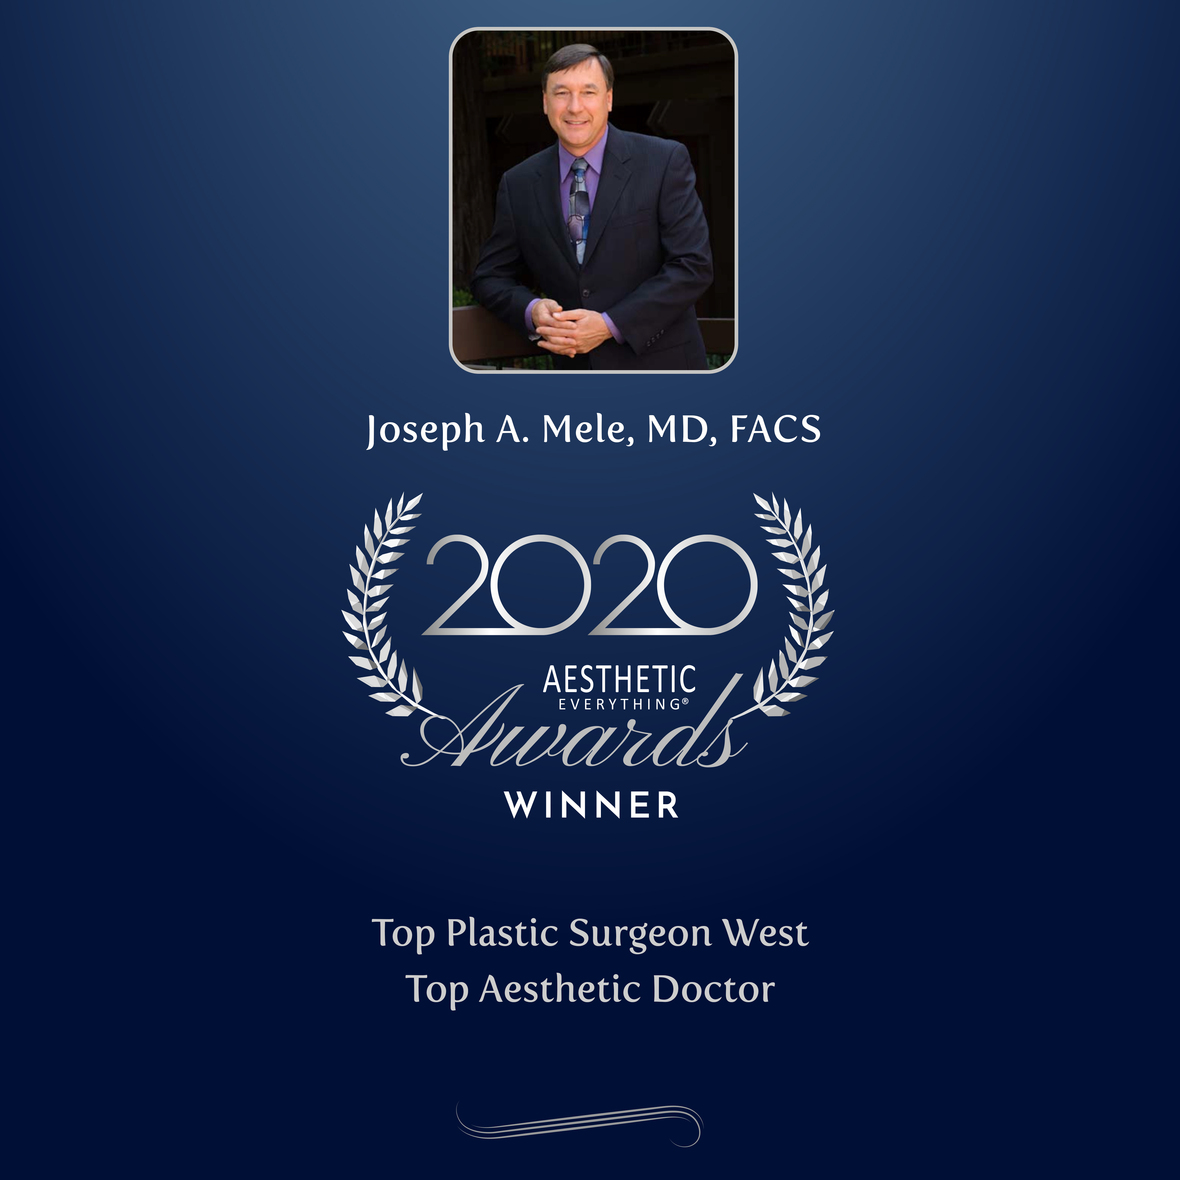 Joseph A. Mele, MD, FACS wins Top Plastic Surgeon West and Top Aesthetic Doctor in the Aesthetic Everything® 2020 Aesthetic and Cosmetic Medicine Awards